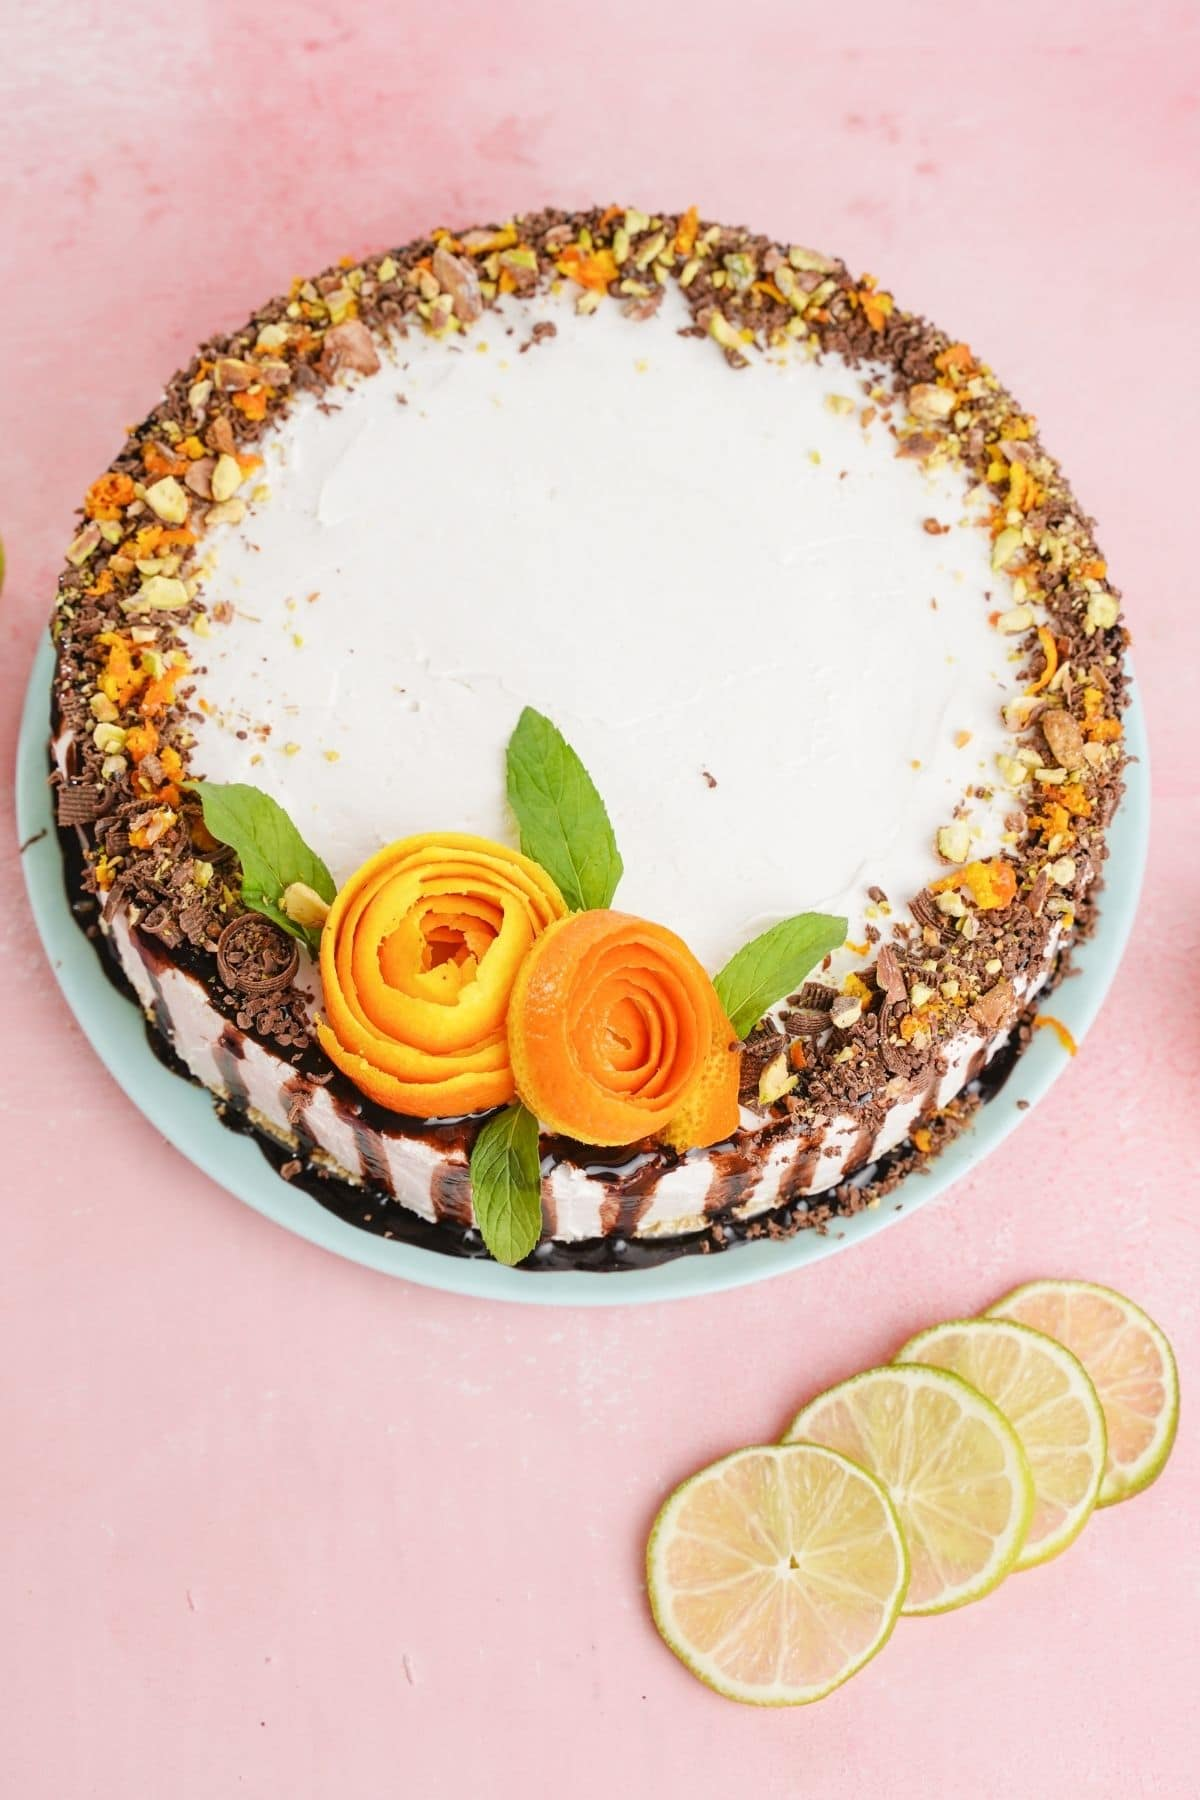 Orange roses and chocolate crumbs on top of cheesecake